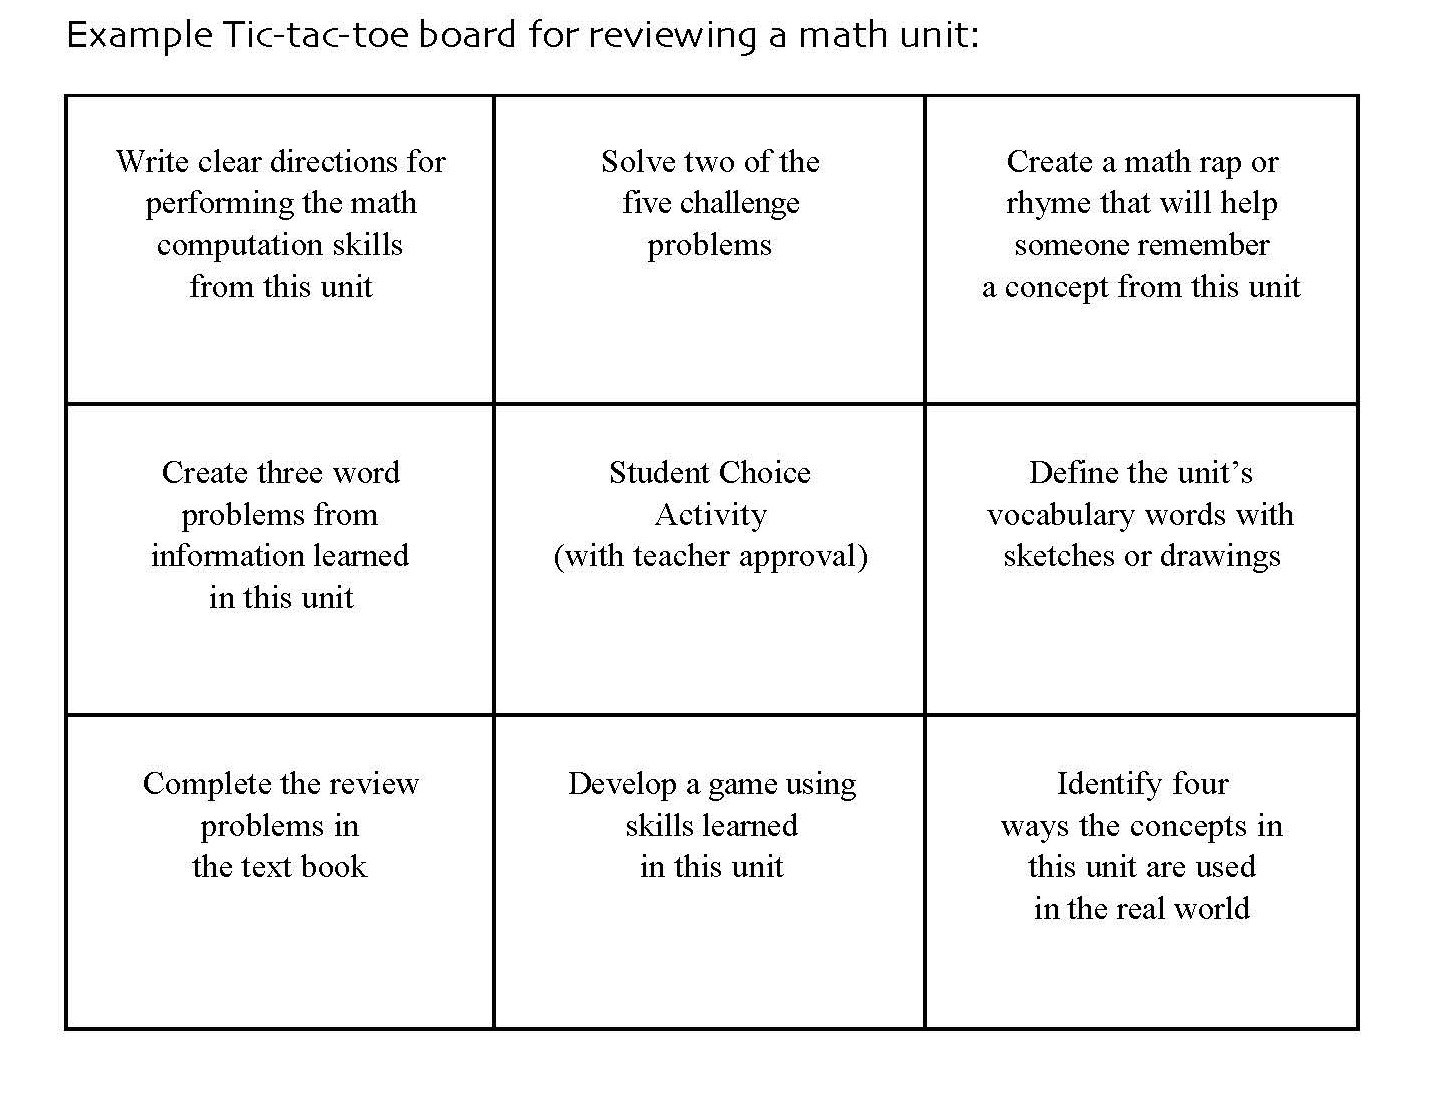 Learning Menu Template Sharing A Few Of My Mobile Learning Sample In Tic Tac Toe Menu Template